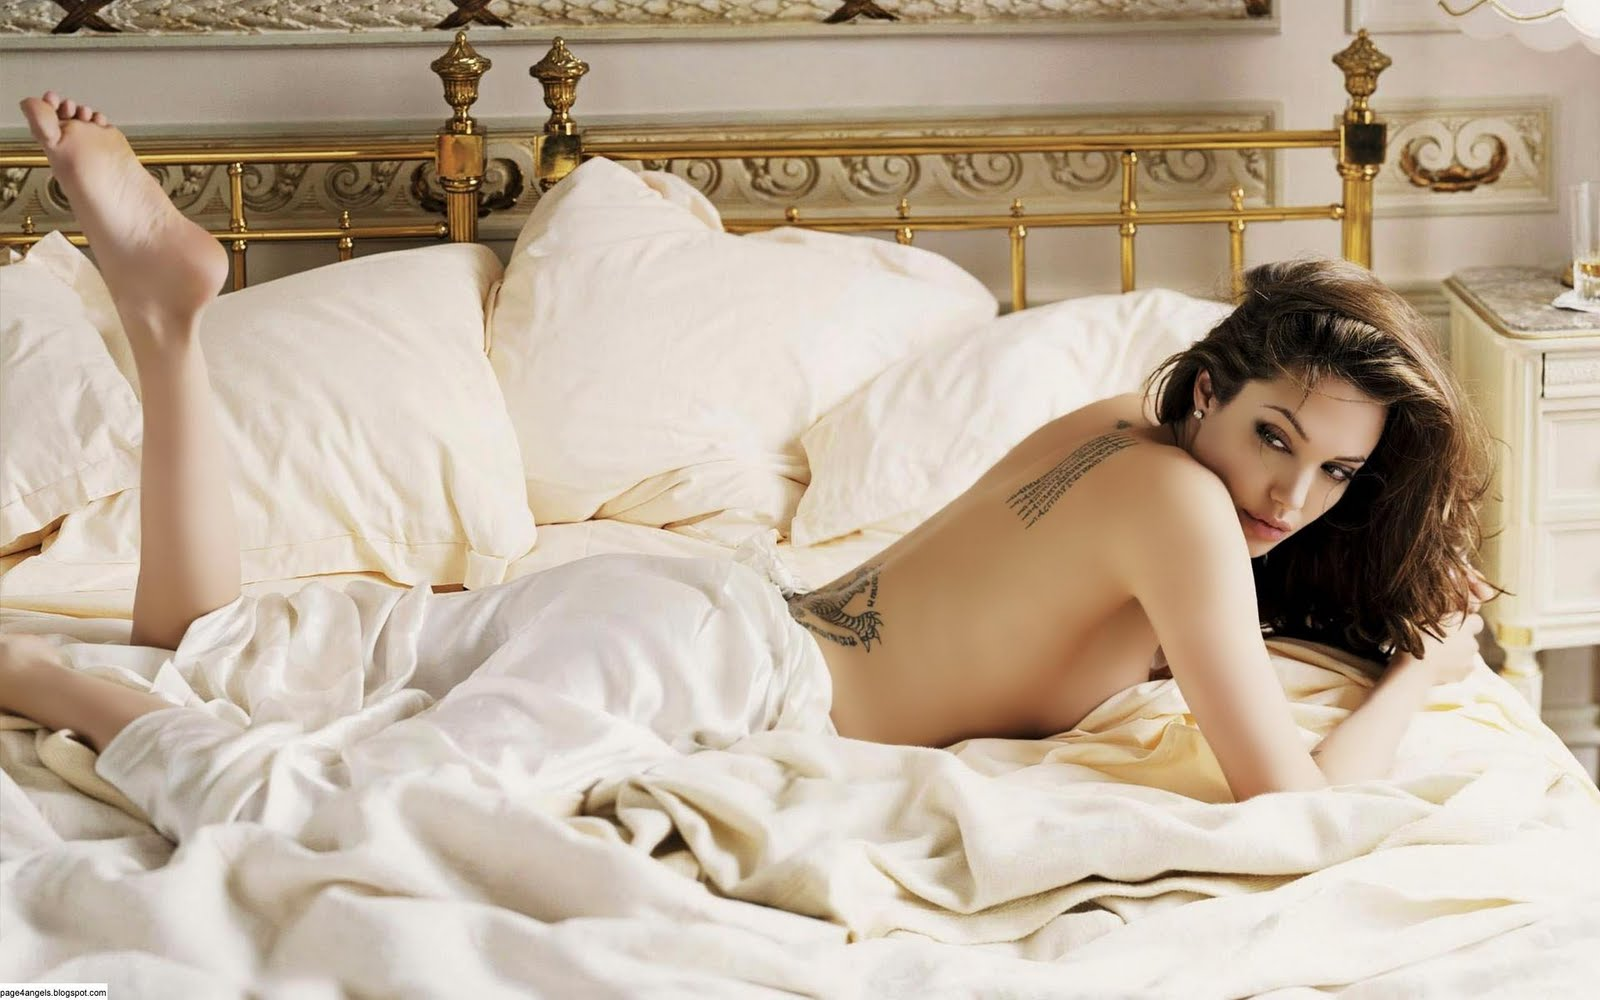 Top 10 Hottest Hollywood Celebrities list